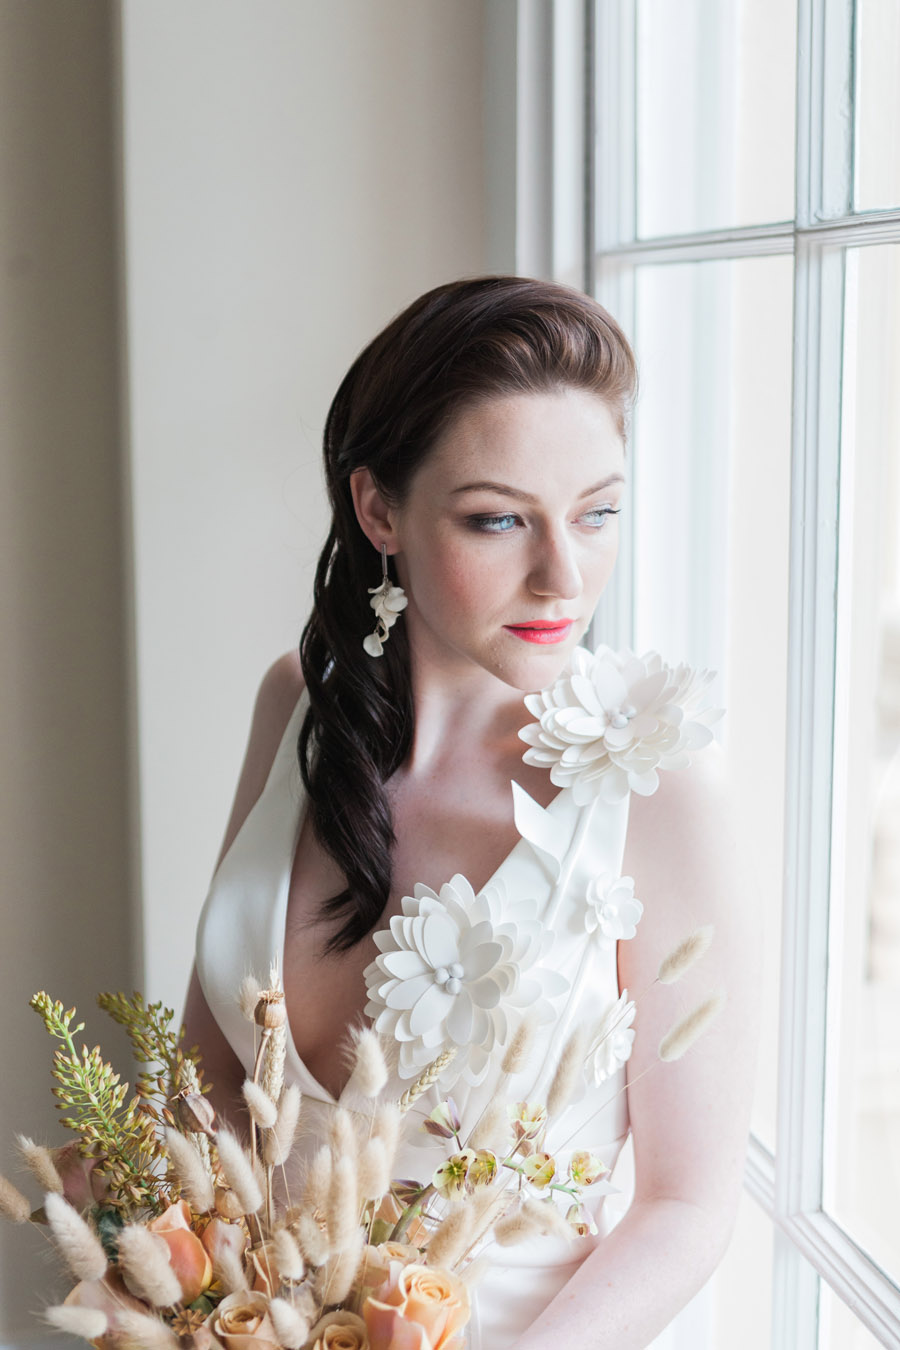 Glorious yellow Bloomologie blooms and styling by Chenai - photo credit Amanda Karen Photography (24)